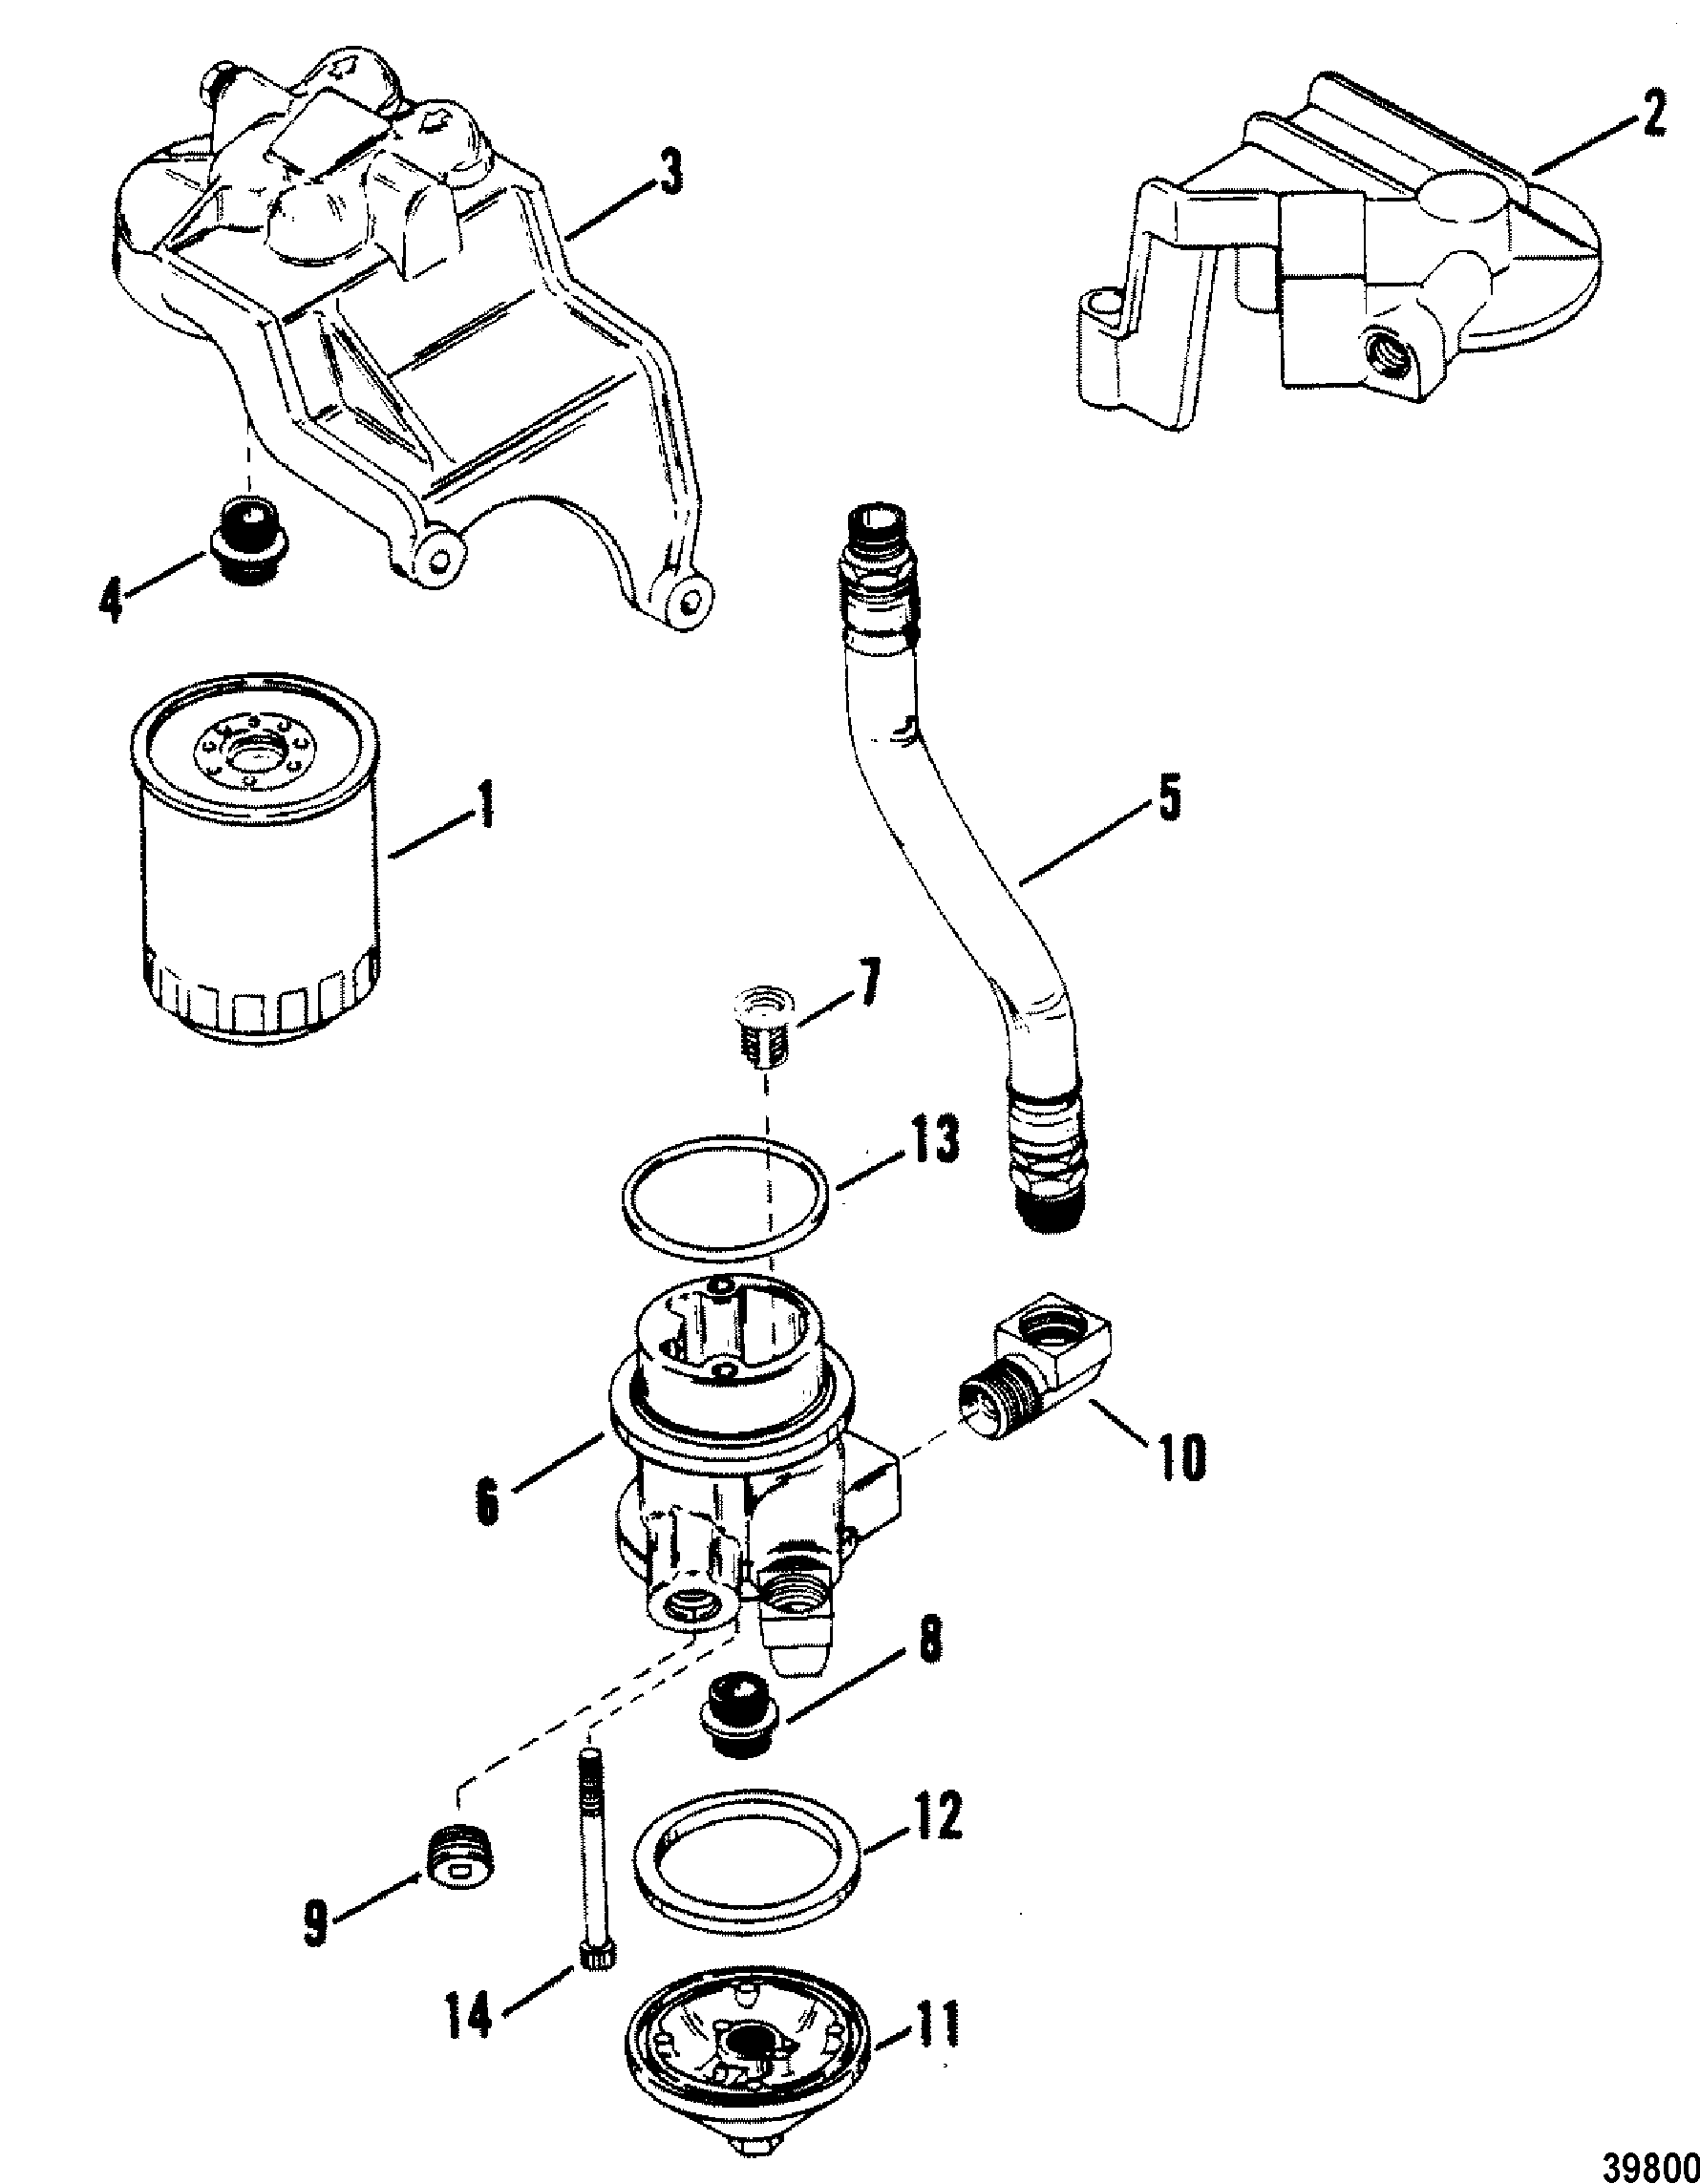 OIL FILTER AND ADAPTER FOR MERCRUISER / MIE 230 HP/260 H.P